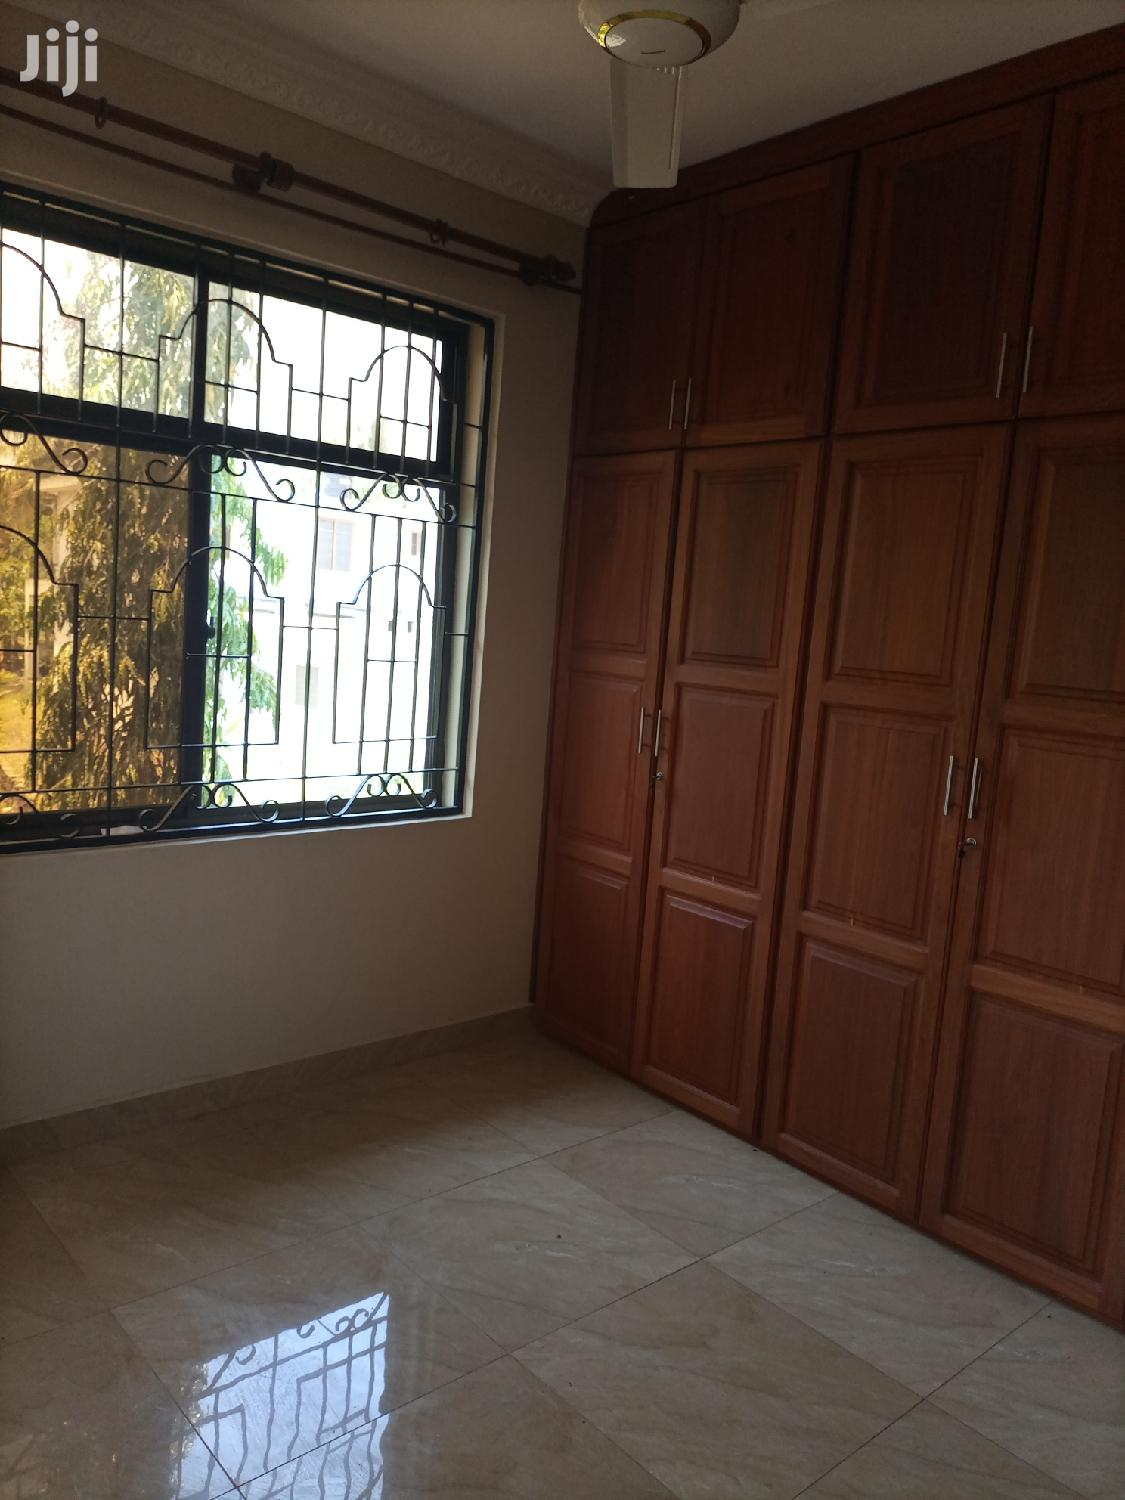 2 Bedrooms Apartment For Rent | Houses & Apartments For Rent for sale in Kinondoni, Dar es Salaam, Tanzania